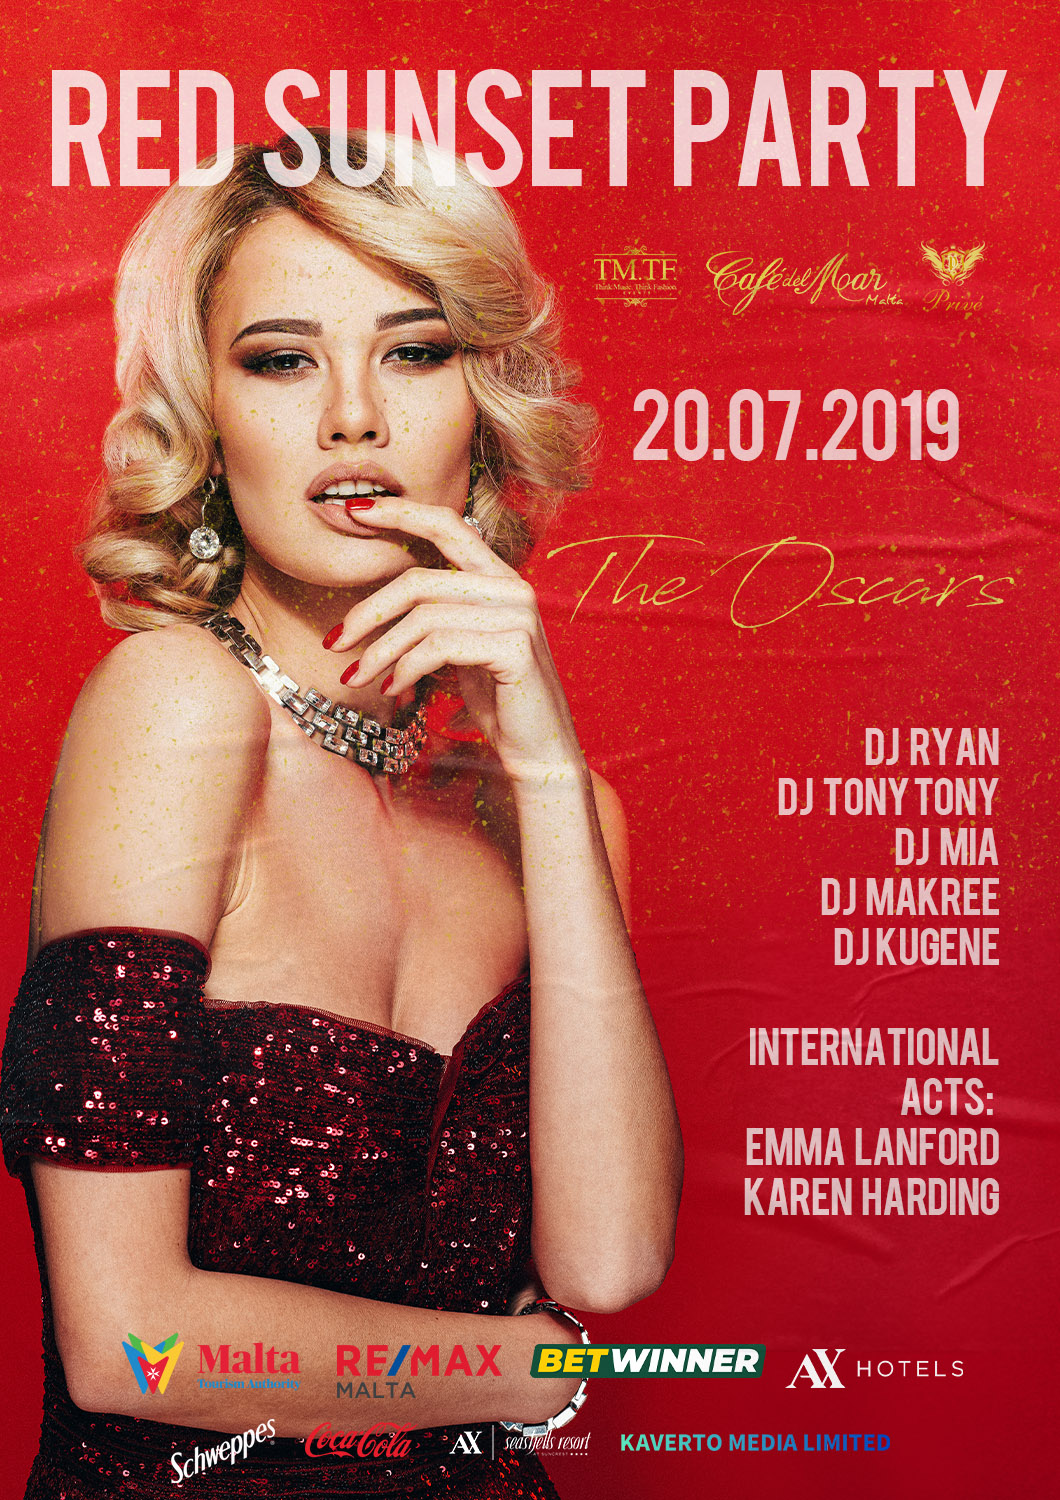 Red Sunset Party 2019 flyer